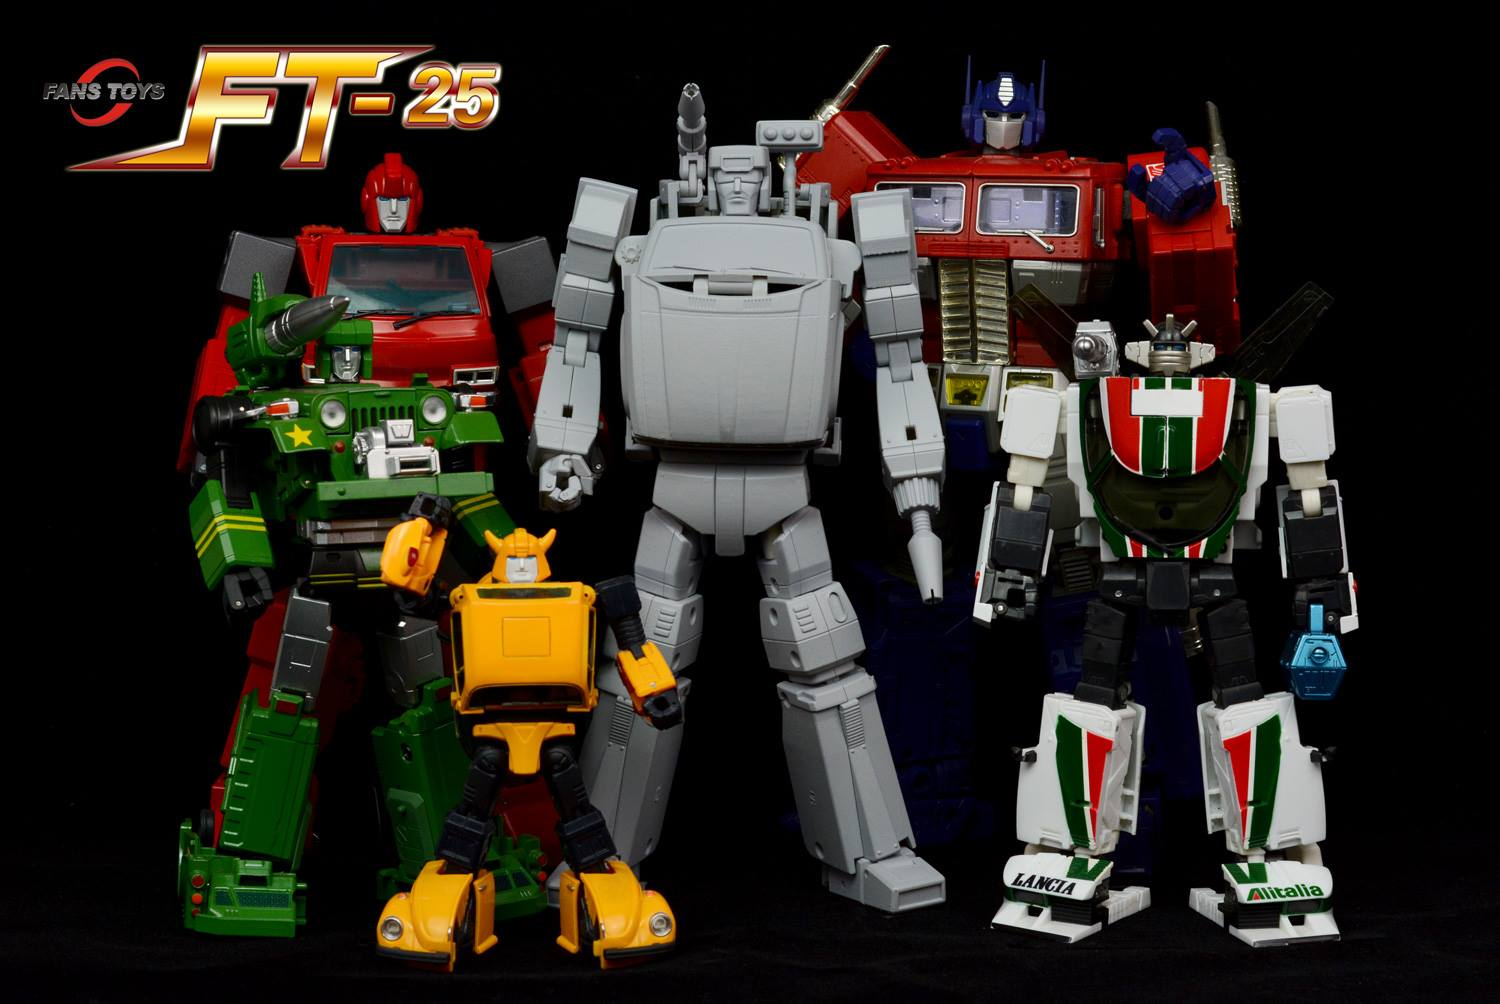 10 Ft Large Fans : Fans toys ft outrider announced transformers news